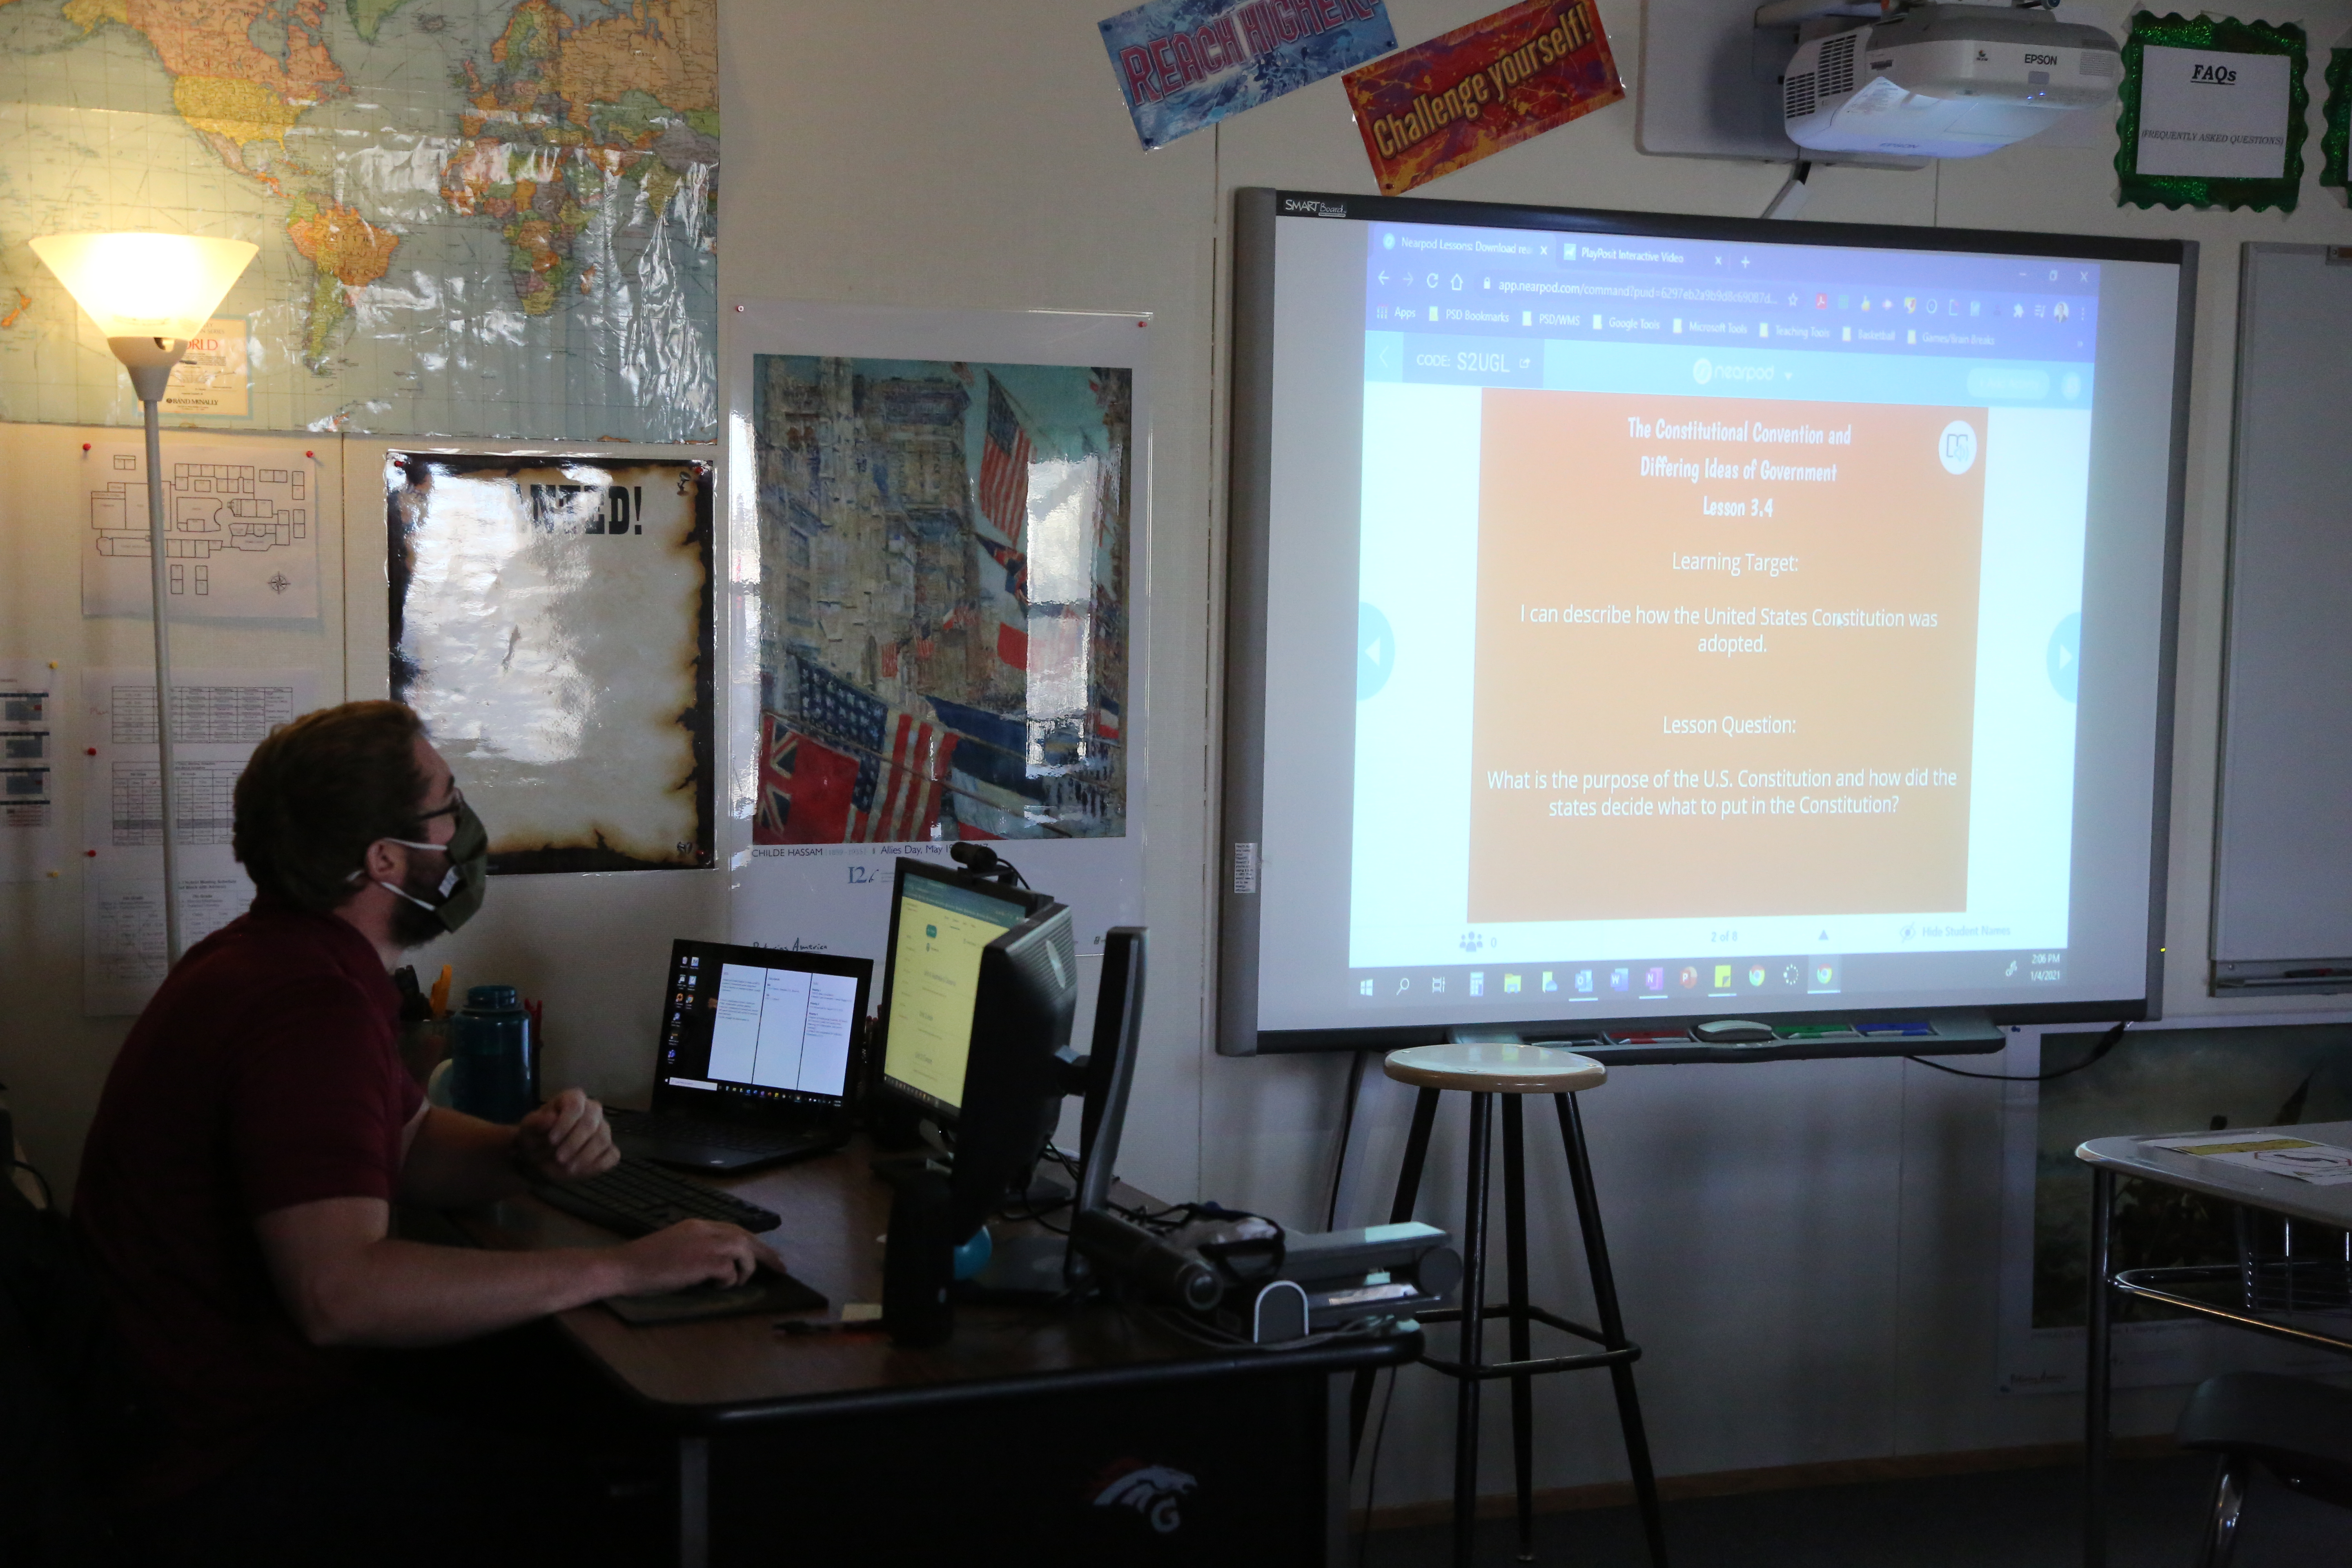 A teacher presents information online to his students from his classroom.